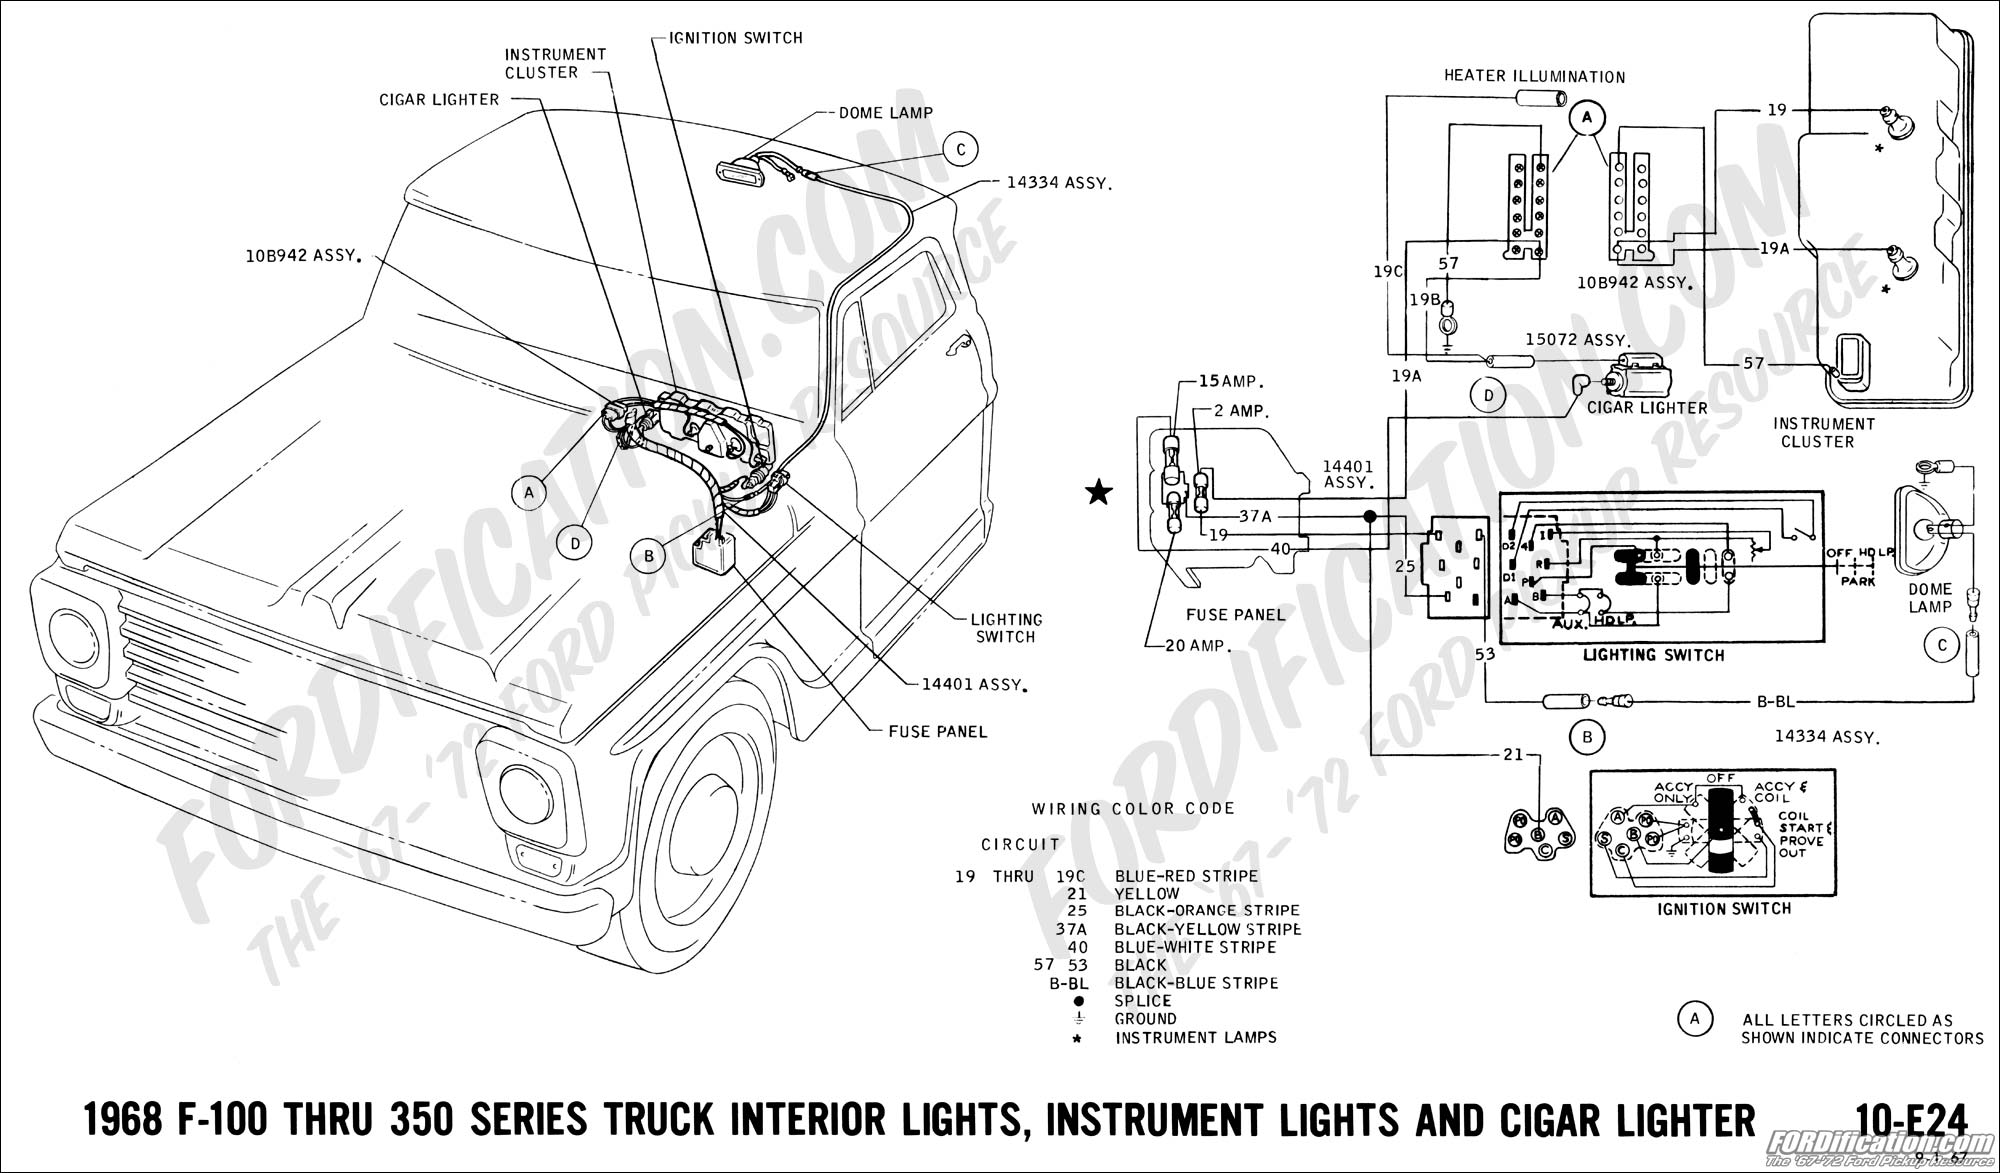 1977 Ford F 250 Fuse Box Diagram Technical Diagrams Archives Image Wiring For 1968 F250 Discover Your